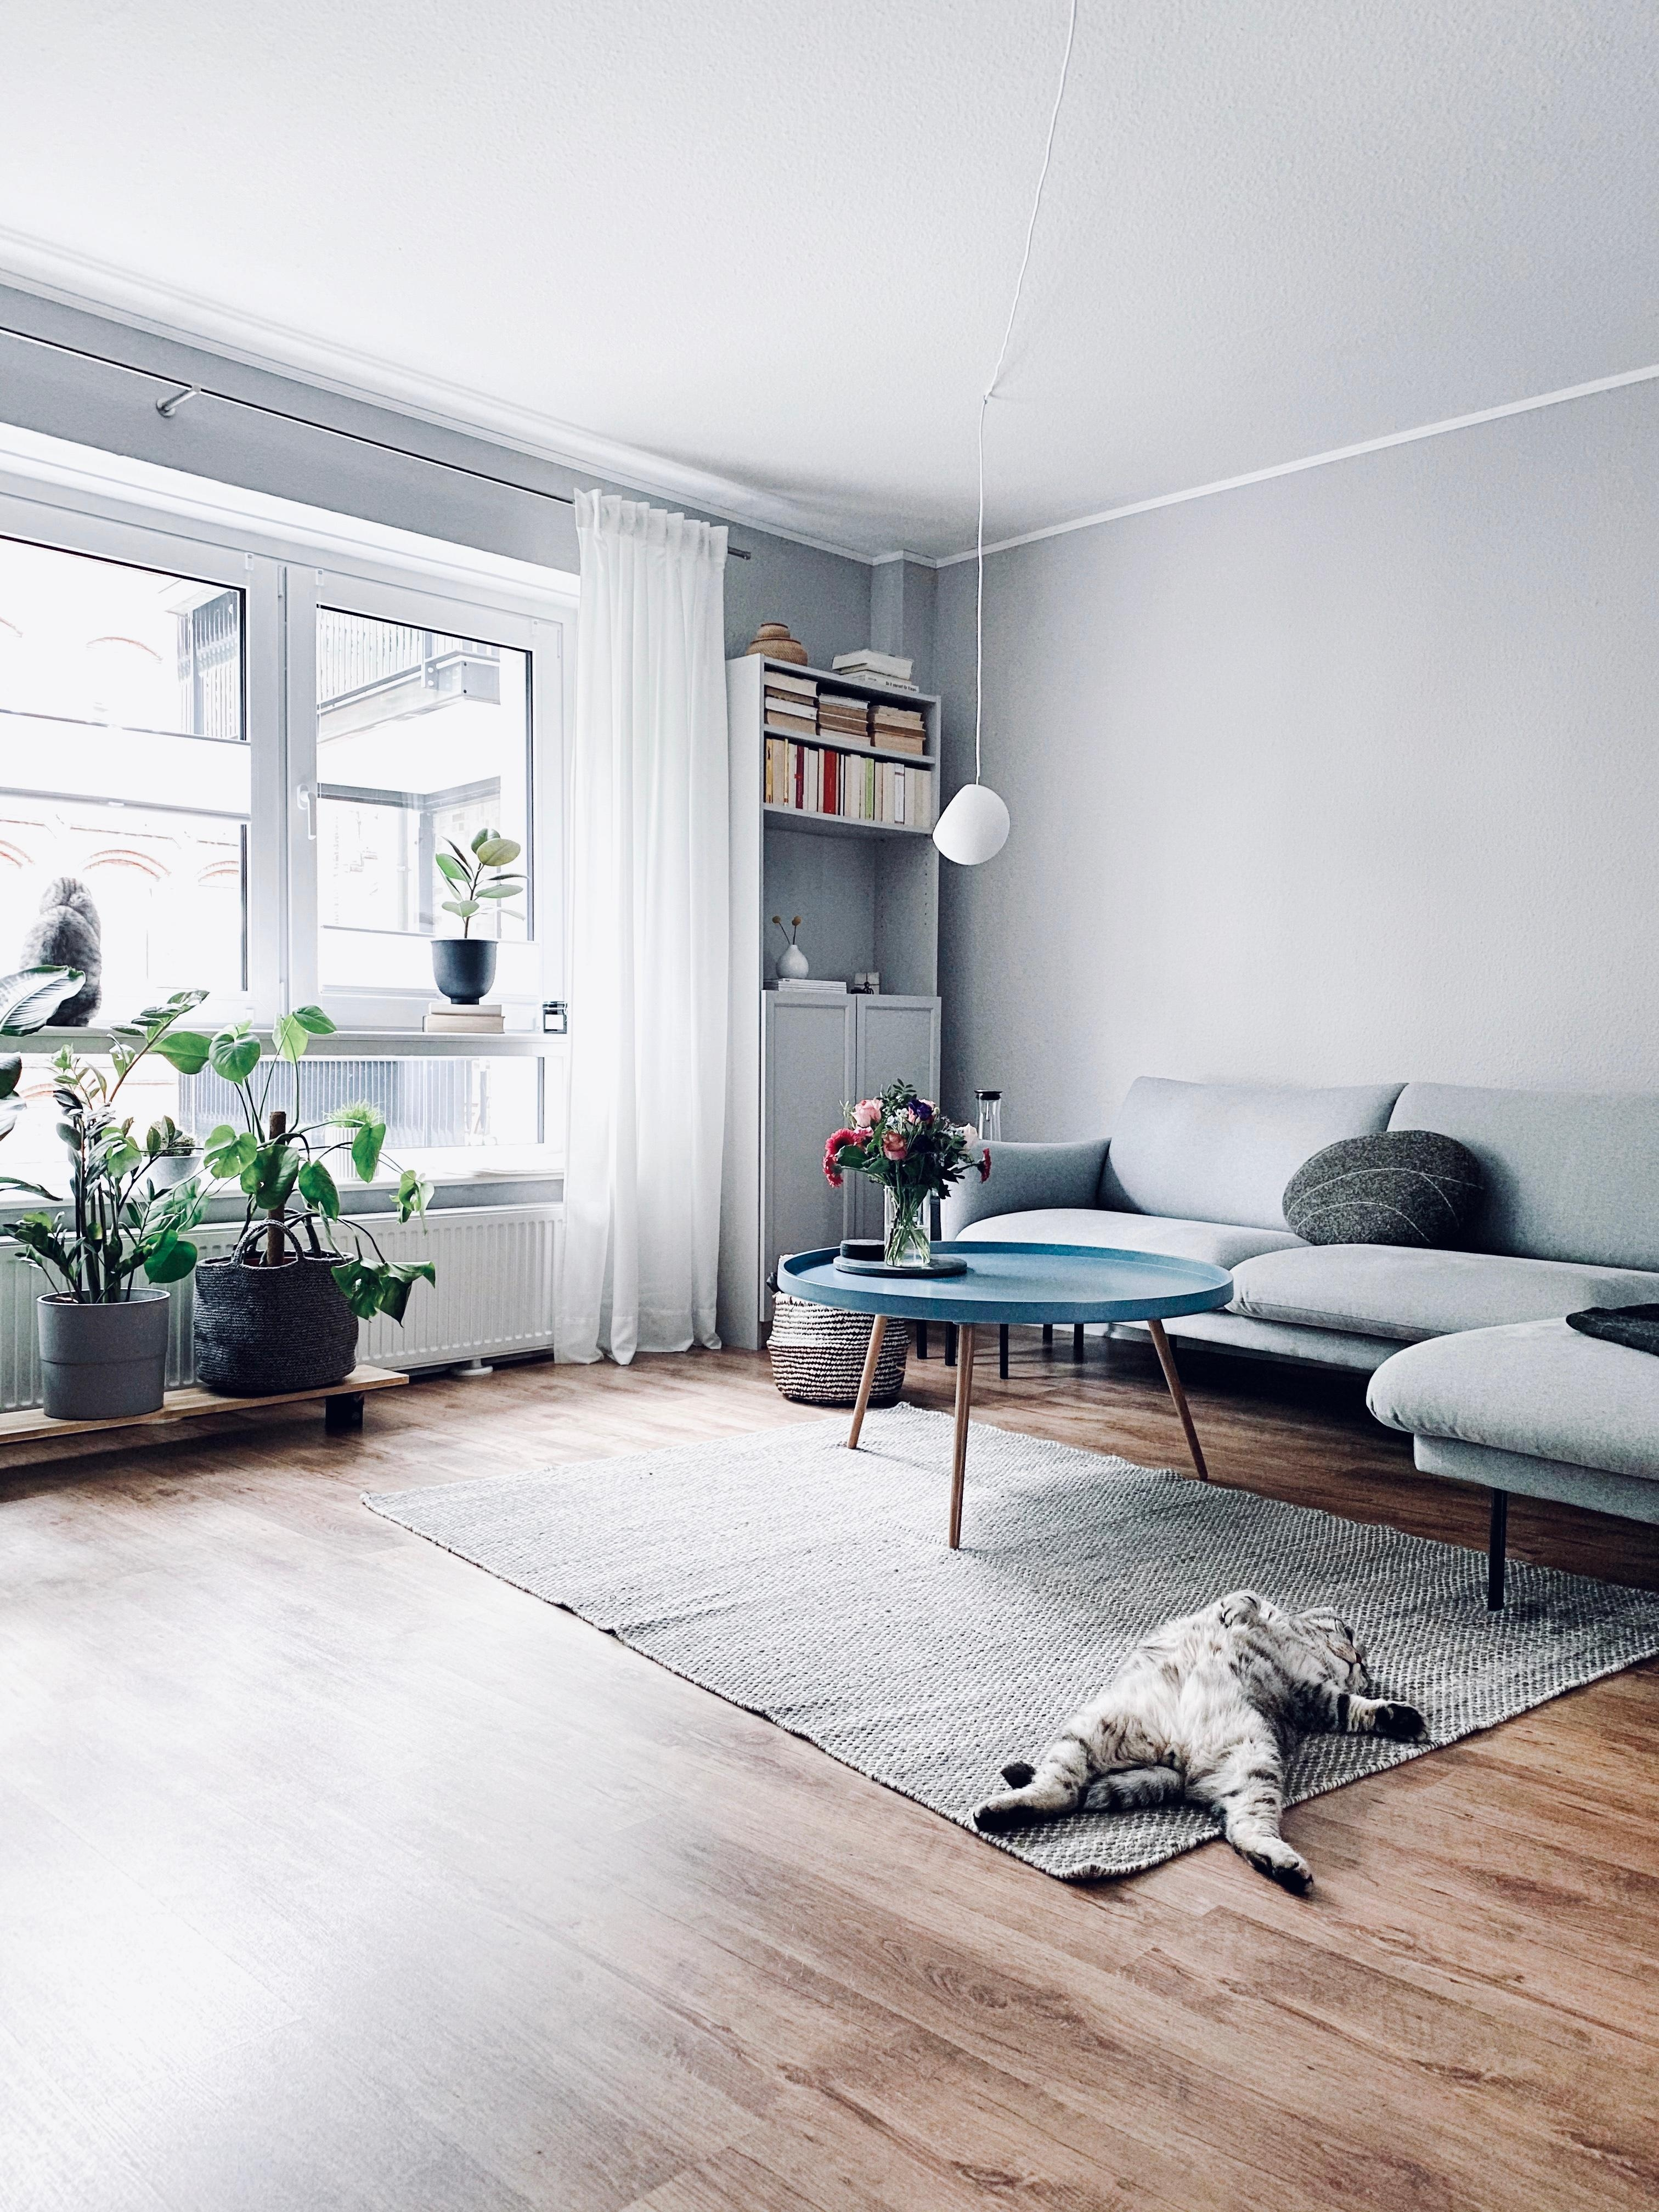 #plantlover #pflanzenliebe #livingroom #catlover #hygge #nordichome